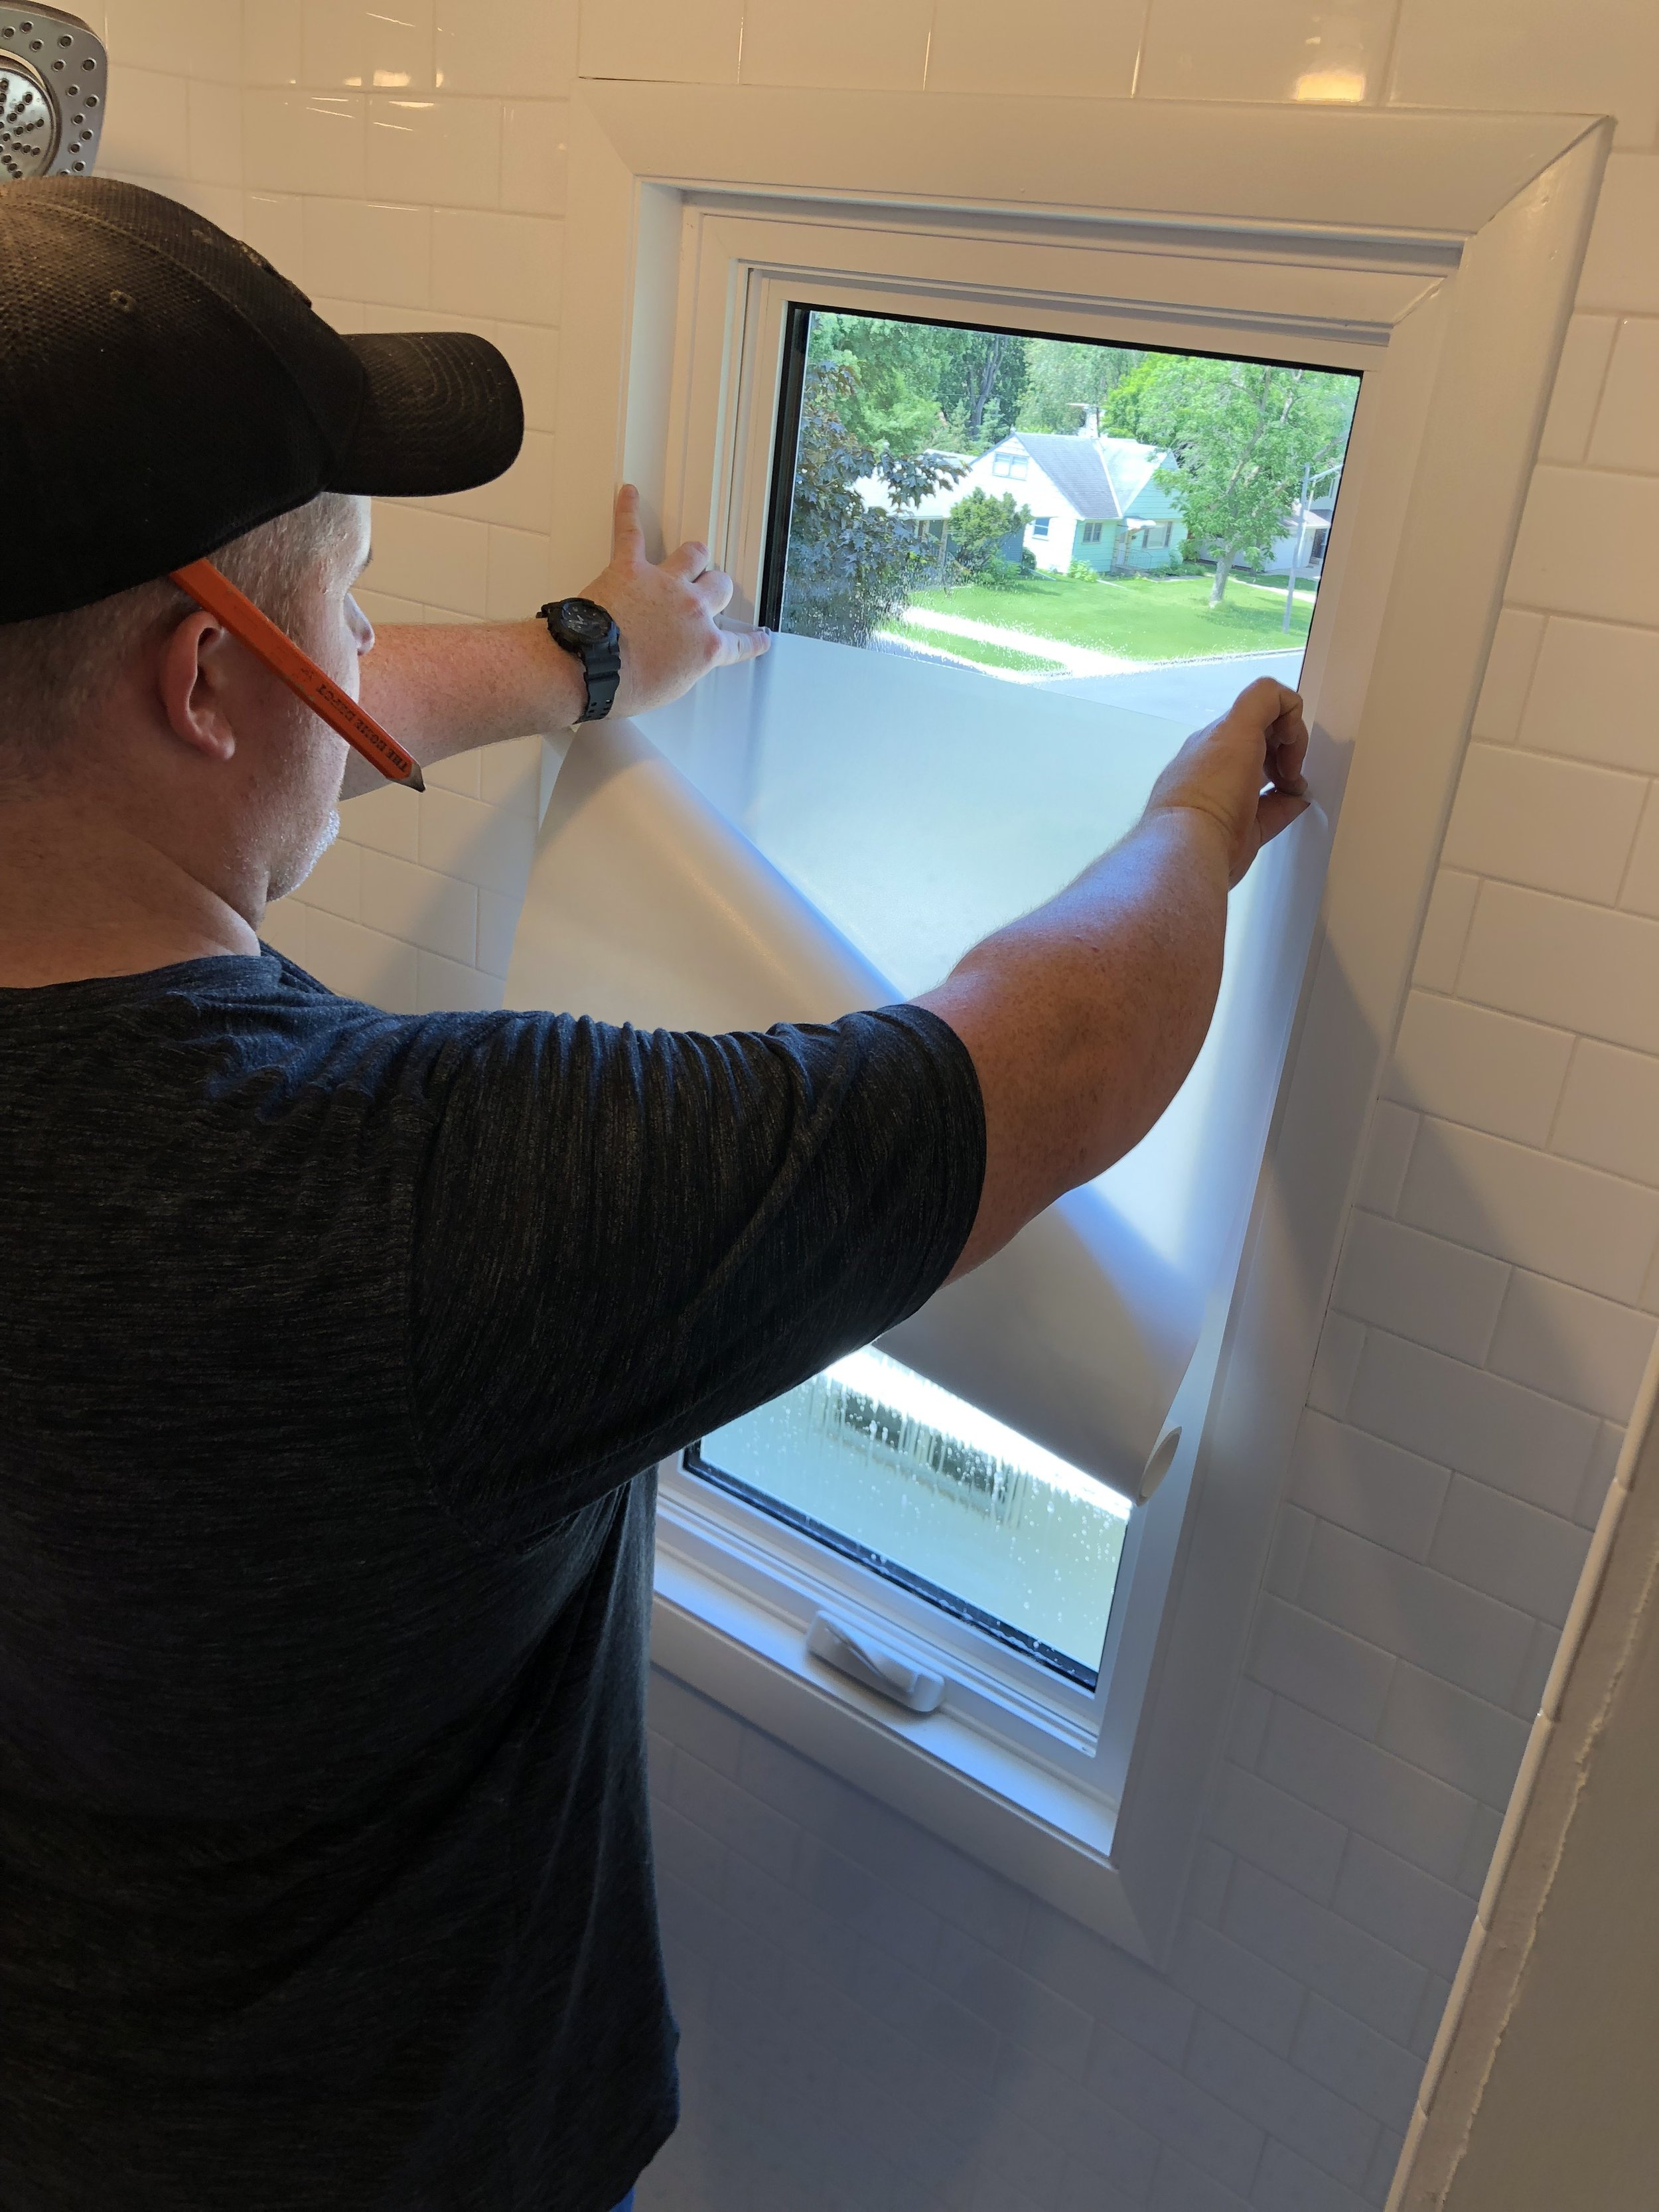 Window with privacy film being applied